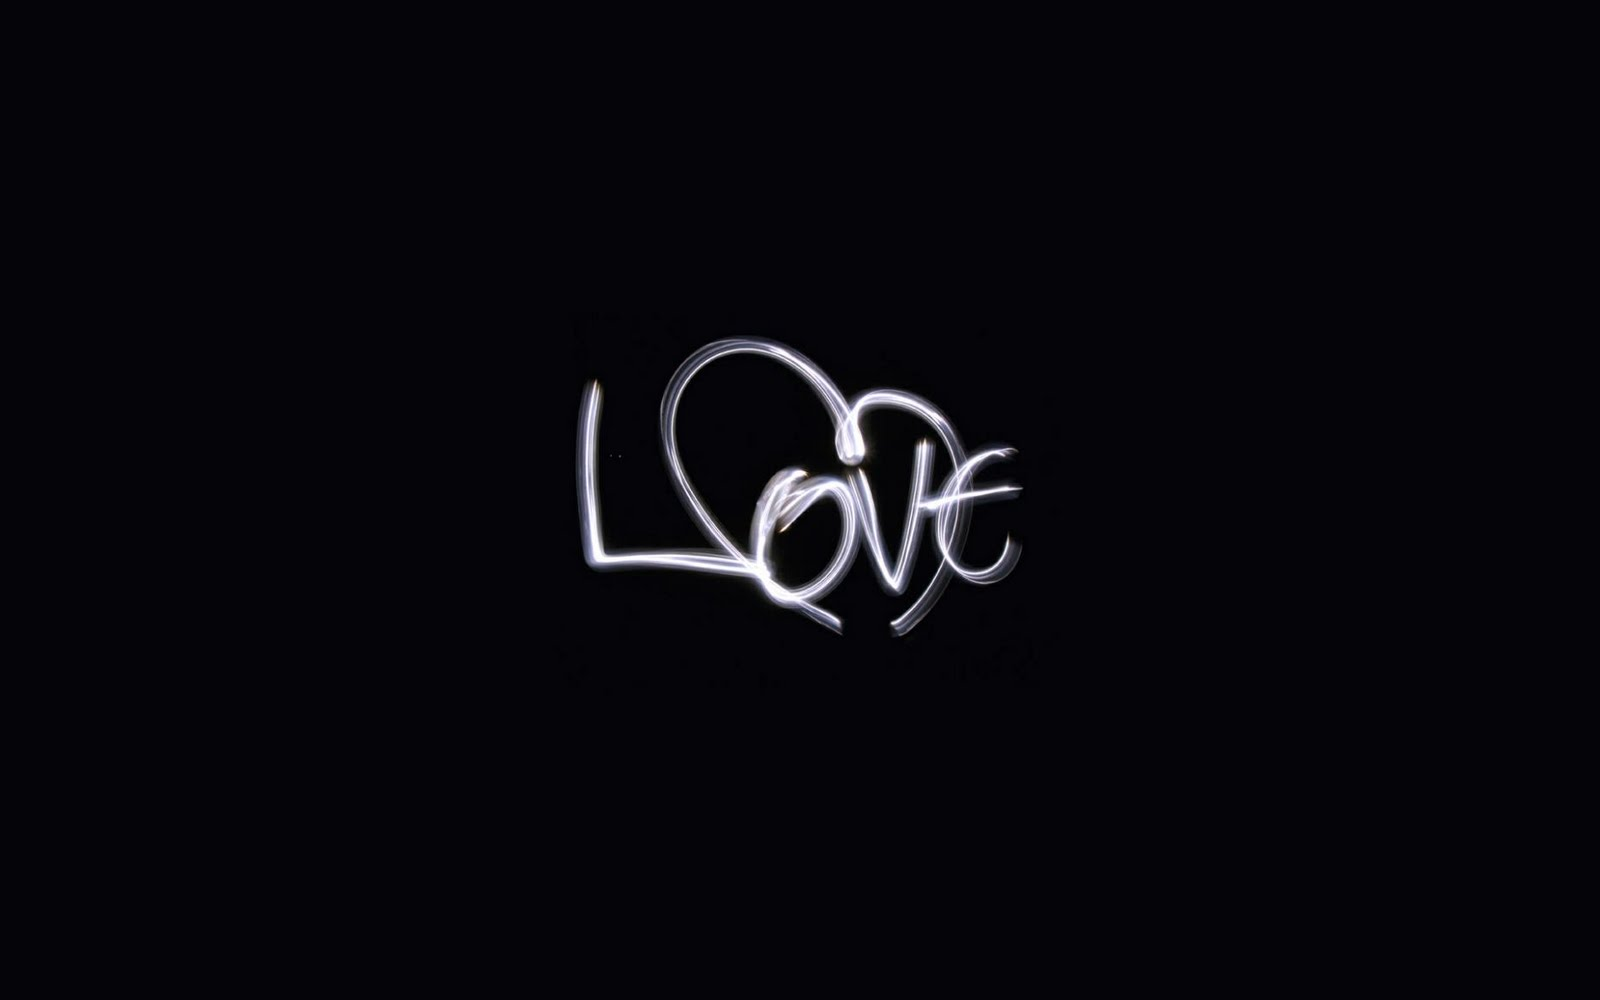 Love Wallpapers Blogspot : TOP HD WALLPAPERS: LOVE HD WALLPAPER